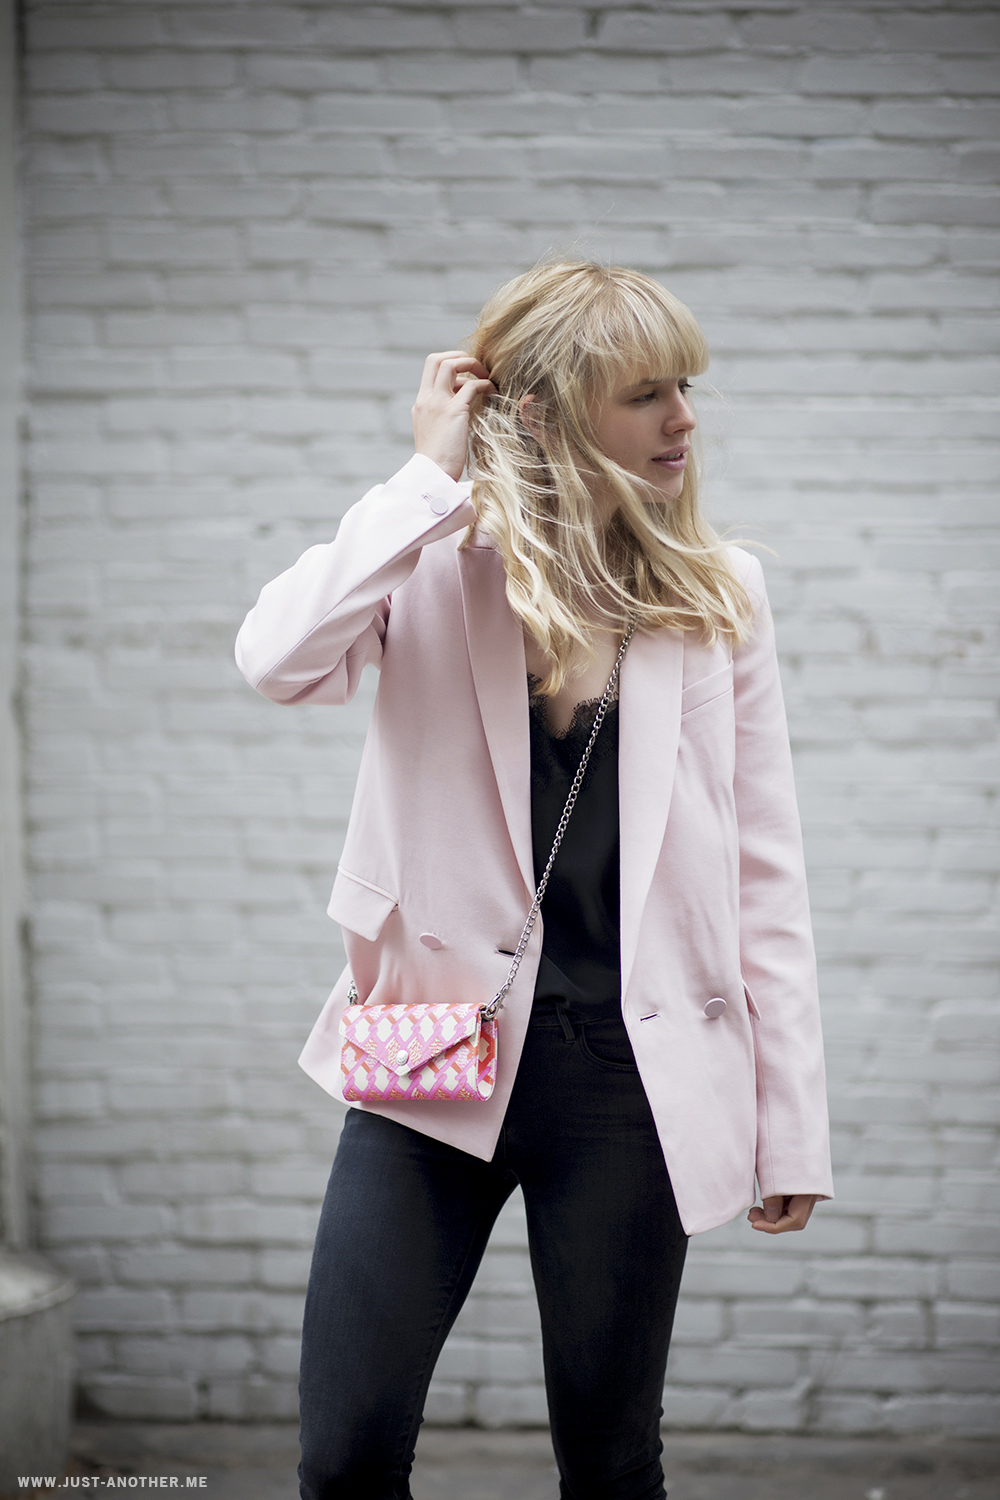 ON WEDNESDAYS WE WEAR PINK | Just Another Fashion Blog